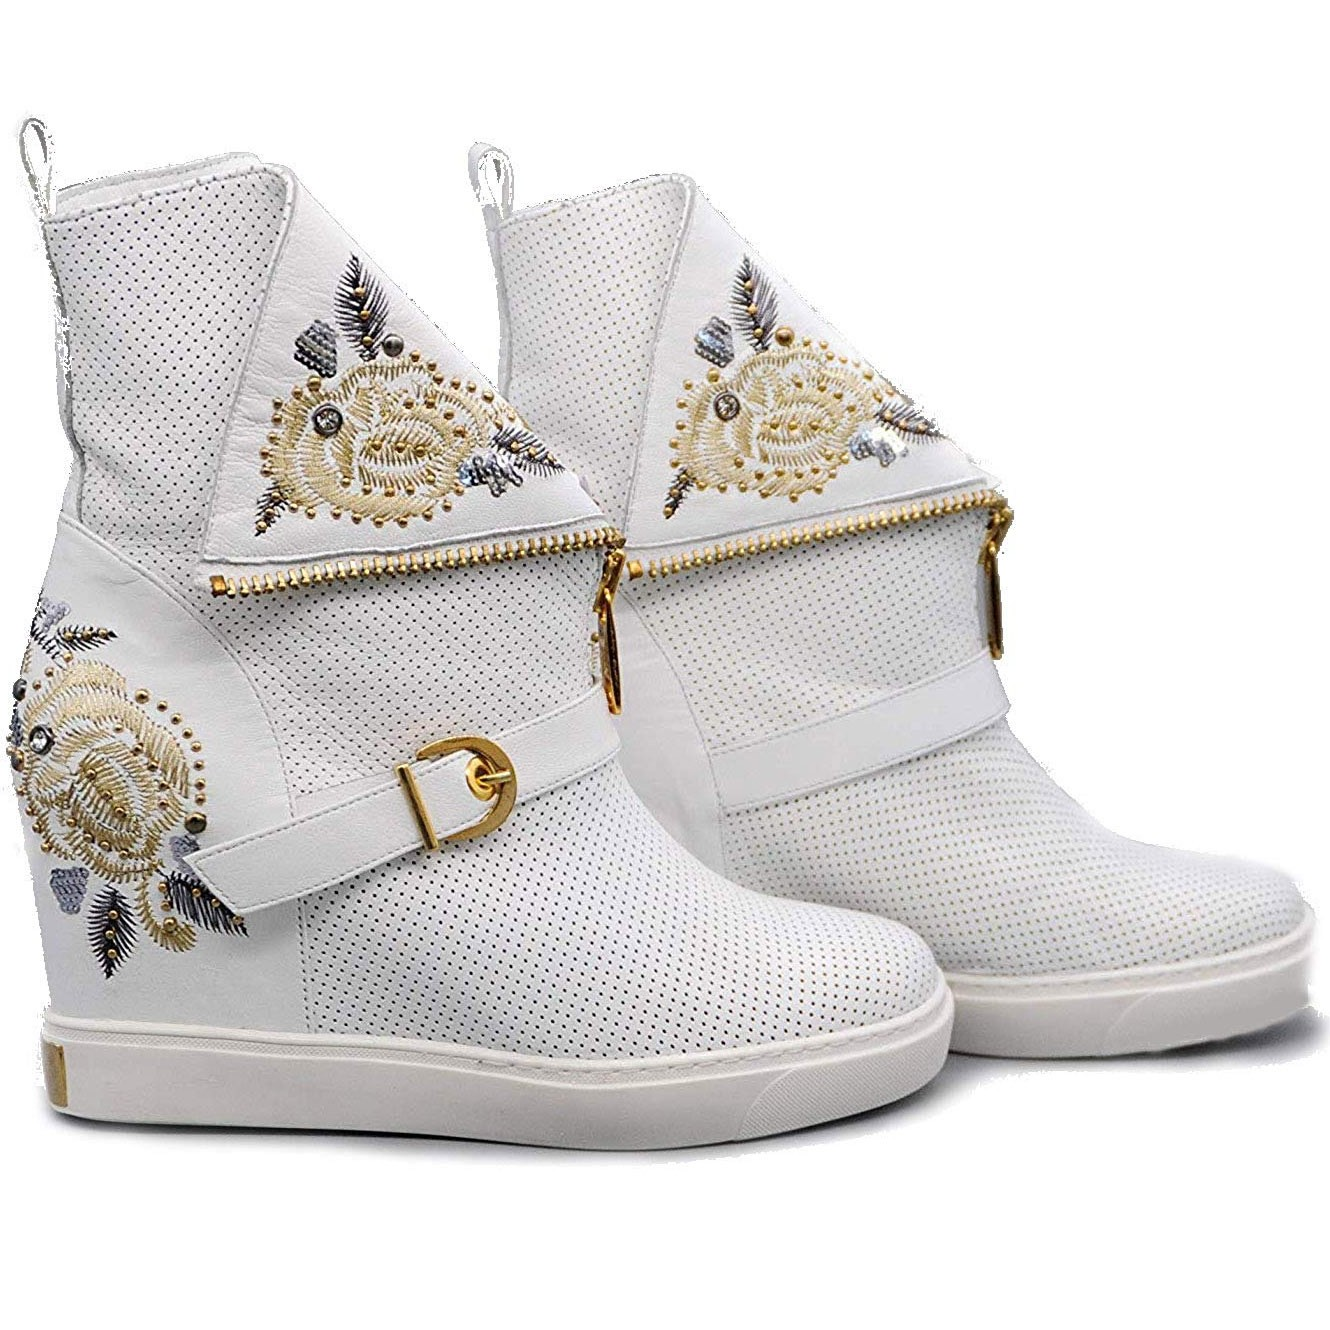 Ladies Casual Ankle Leather Boots with Gold Silver Leaf Pattern and Studs with Wedge Heel